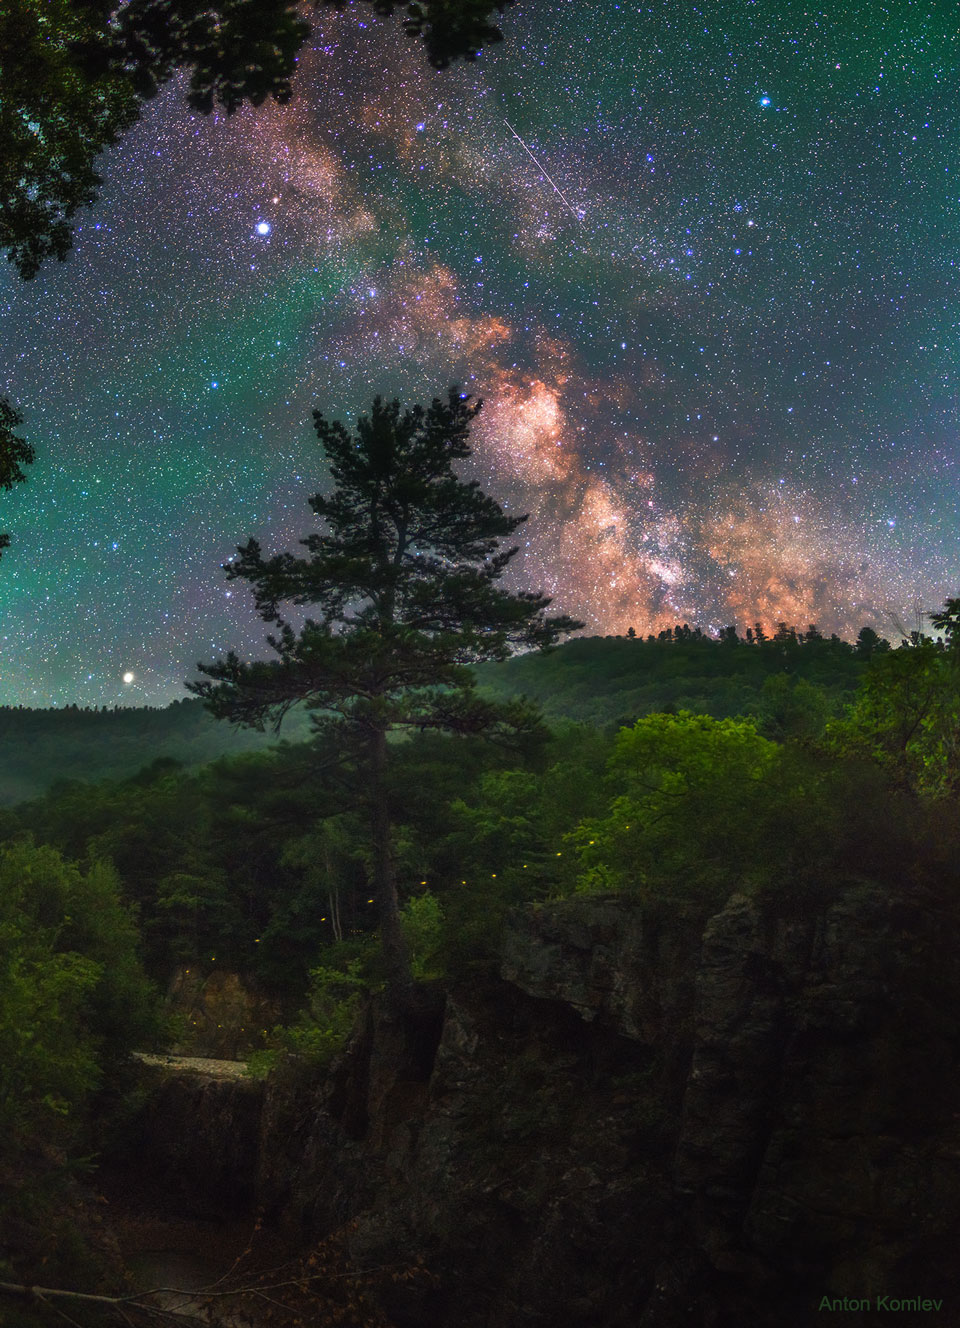 The picture shows an arching Milky Way Galaxy with a firefly  path in the foreground over Russia. Please see the explanation for more detailed information.